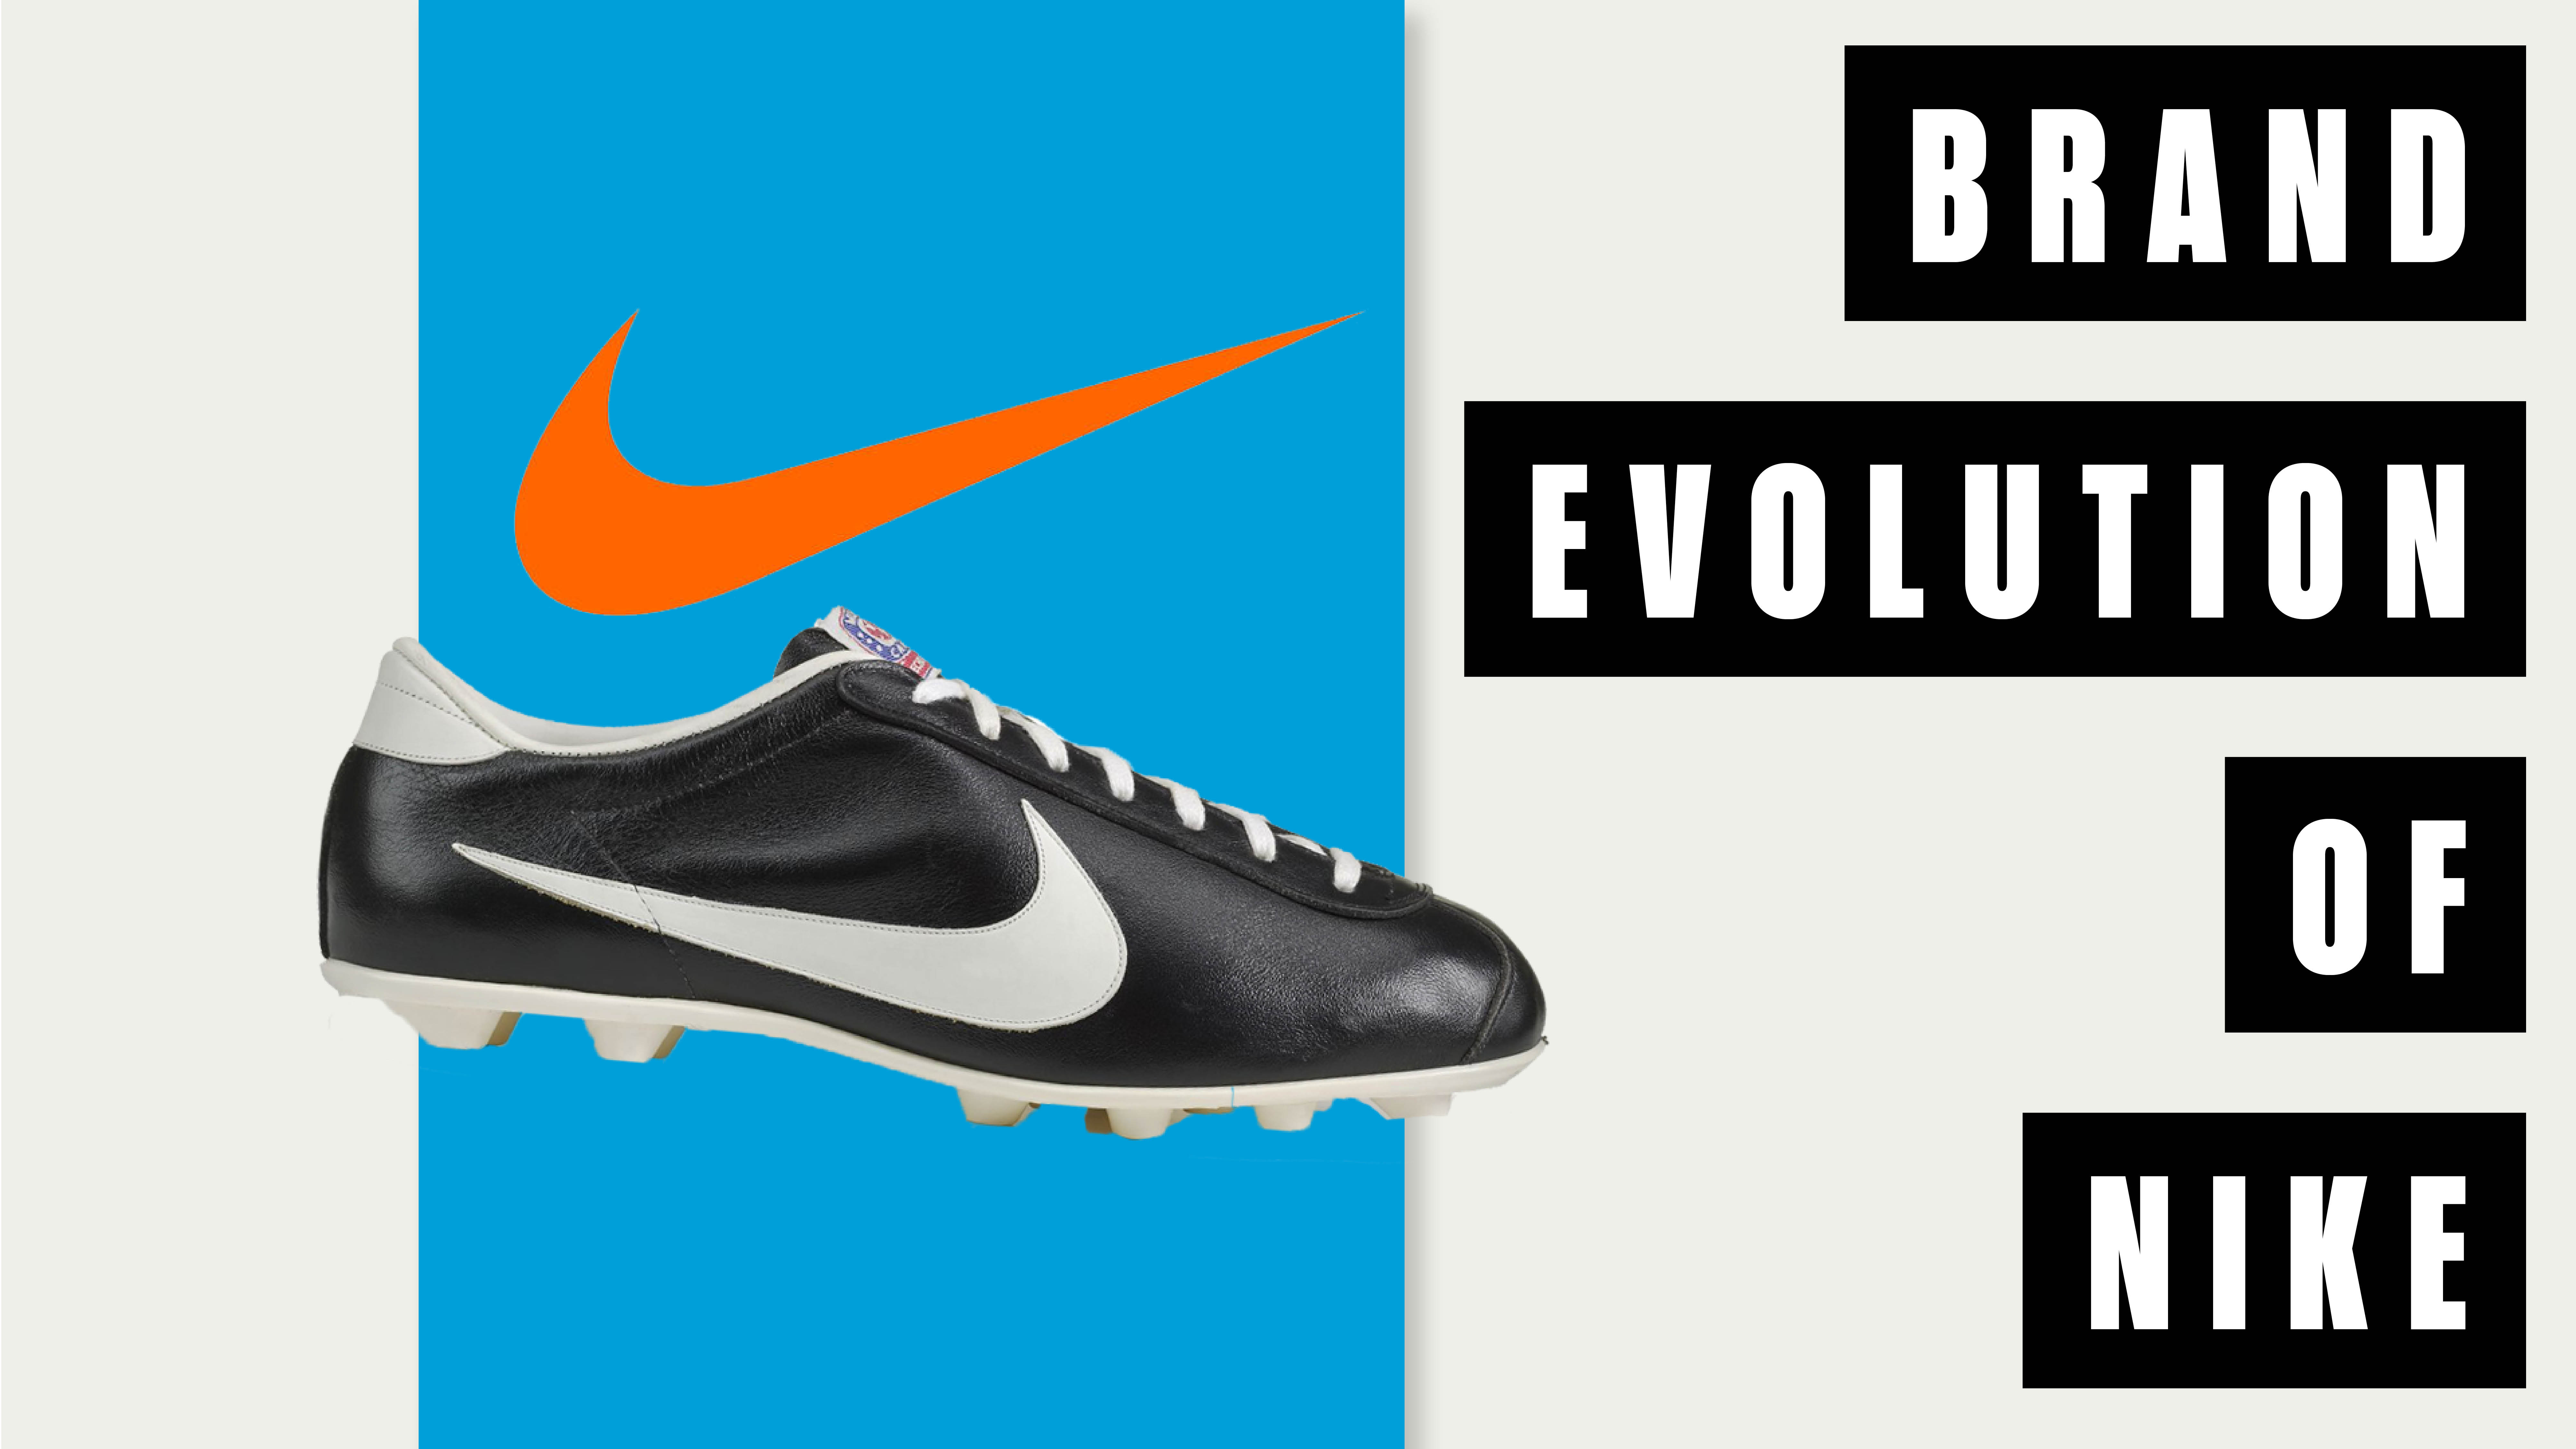 8af3820b5 Just Watch It  The History Of Nike In 3 Minutes